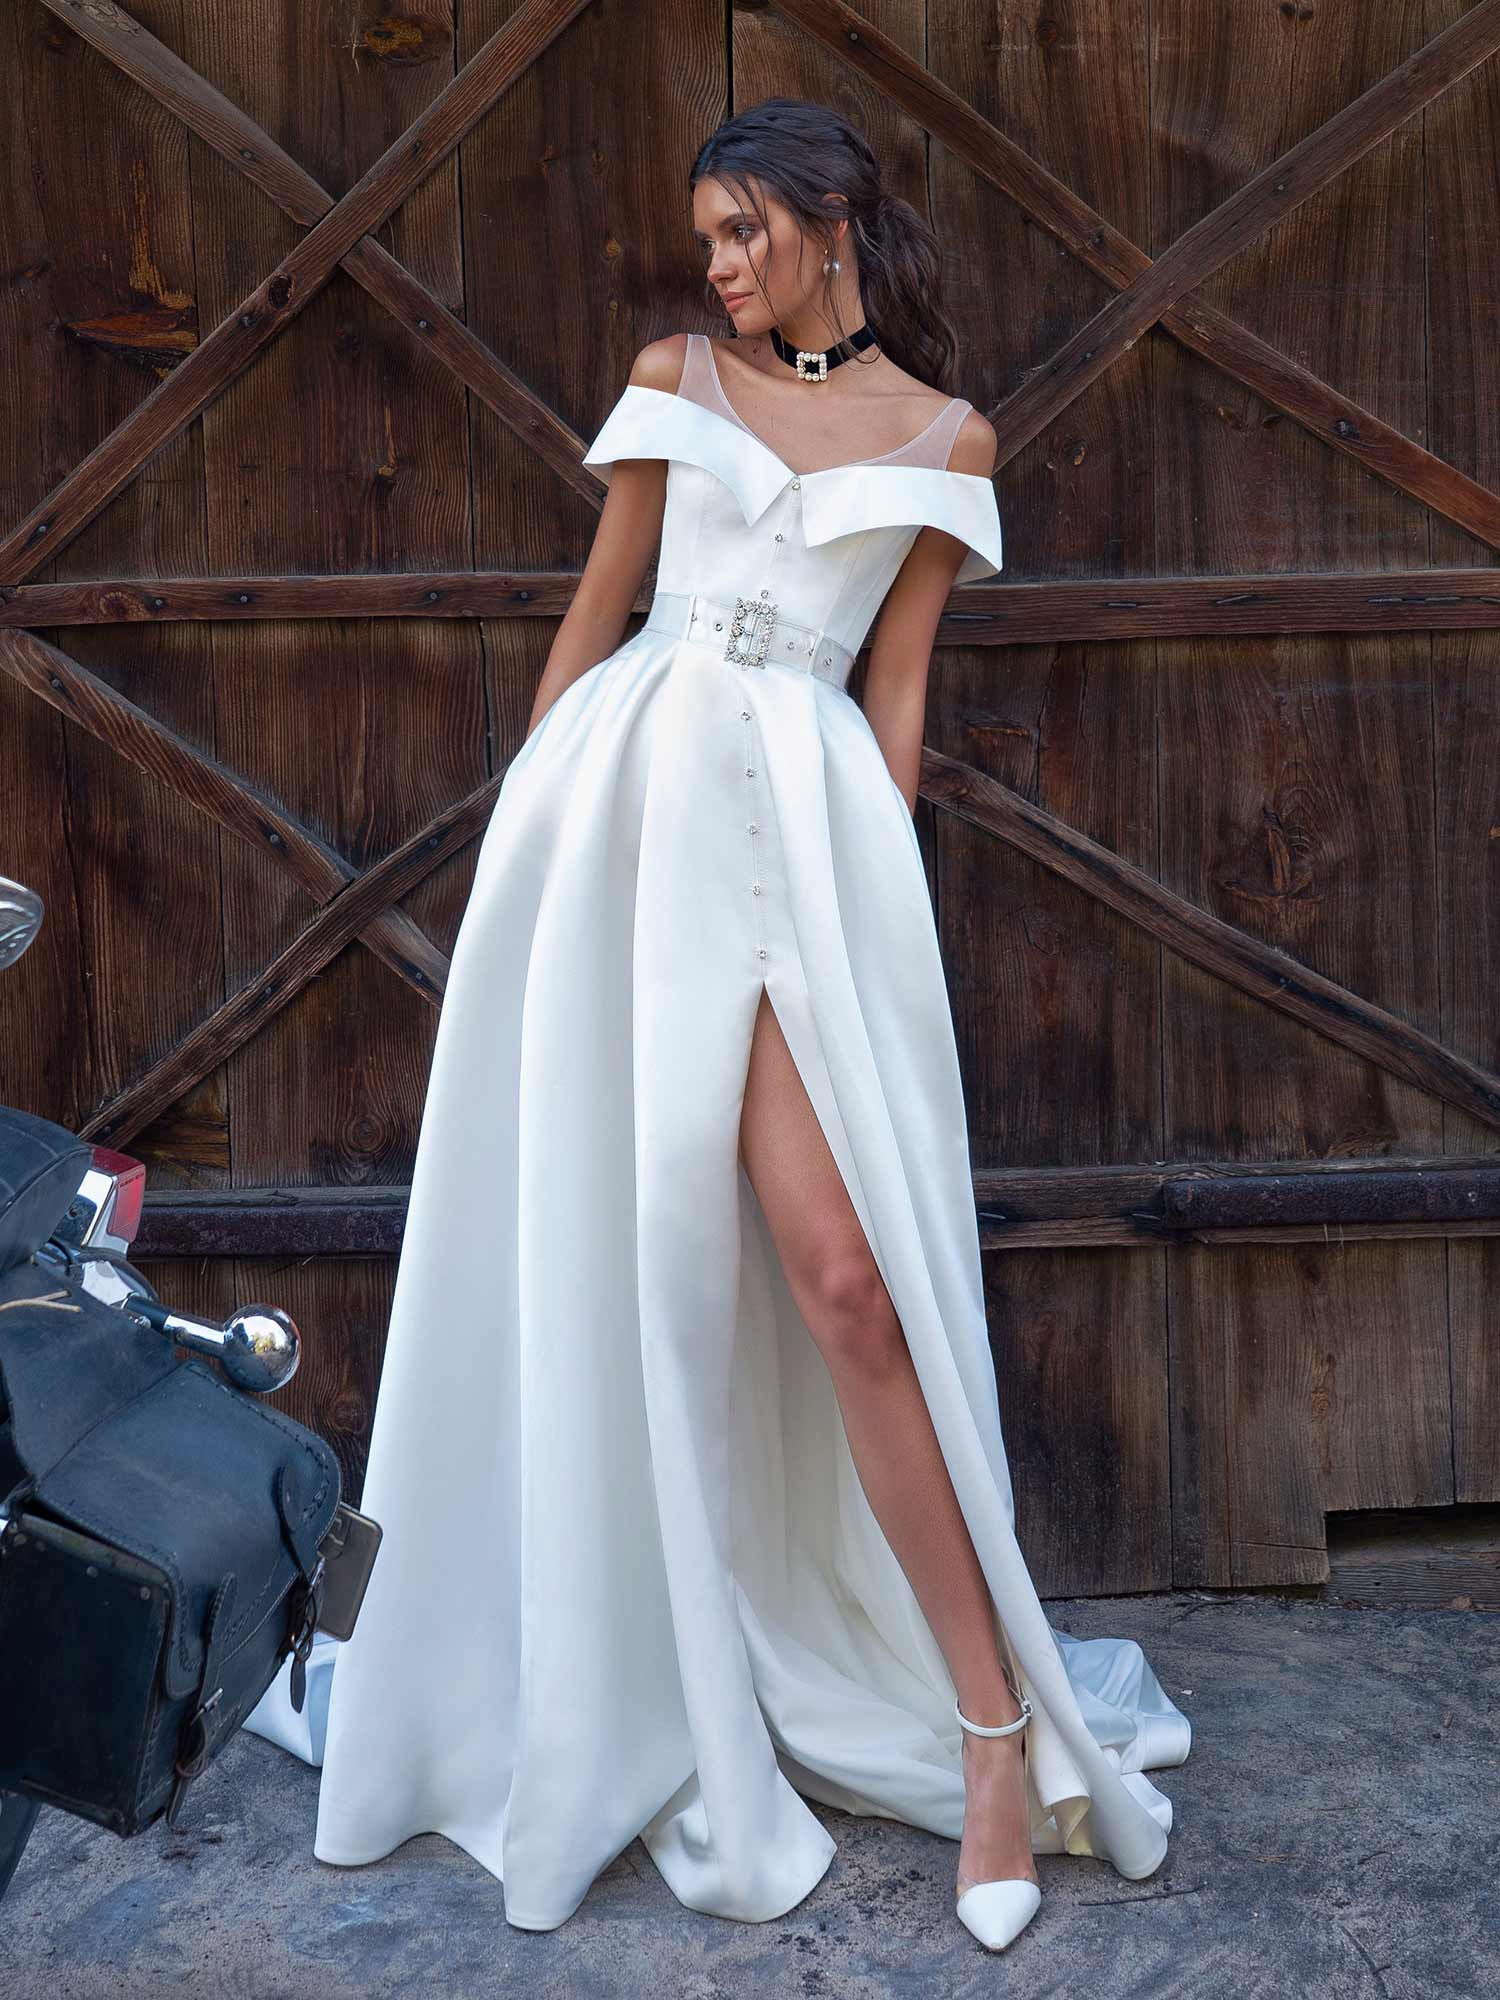 Style #12075, modern wedding dress with slit up the leg, available in ivory